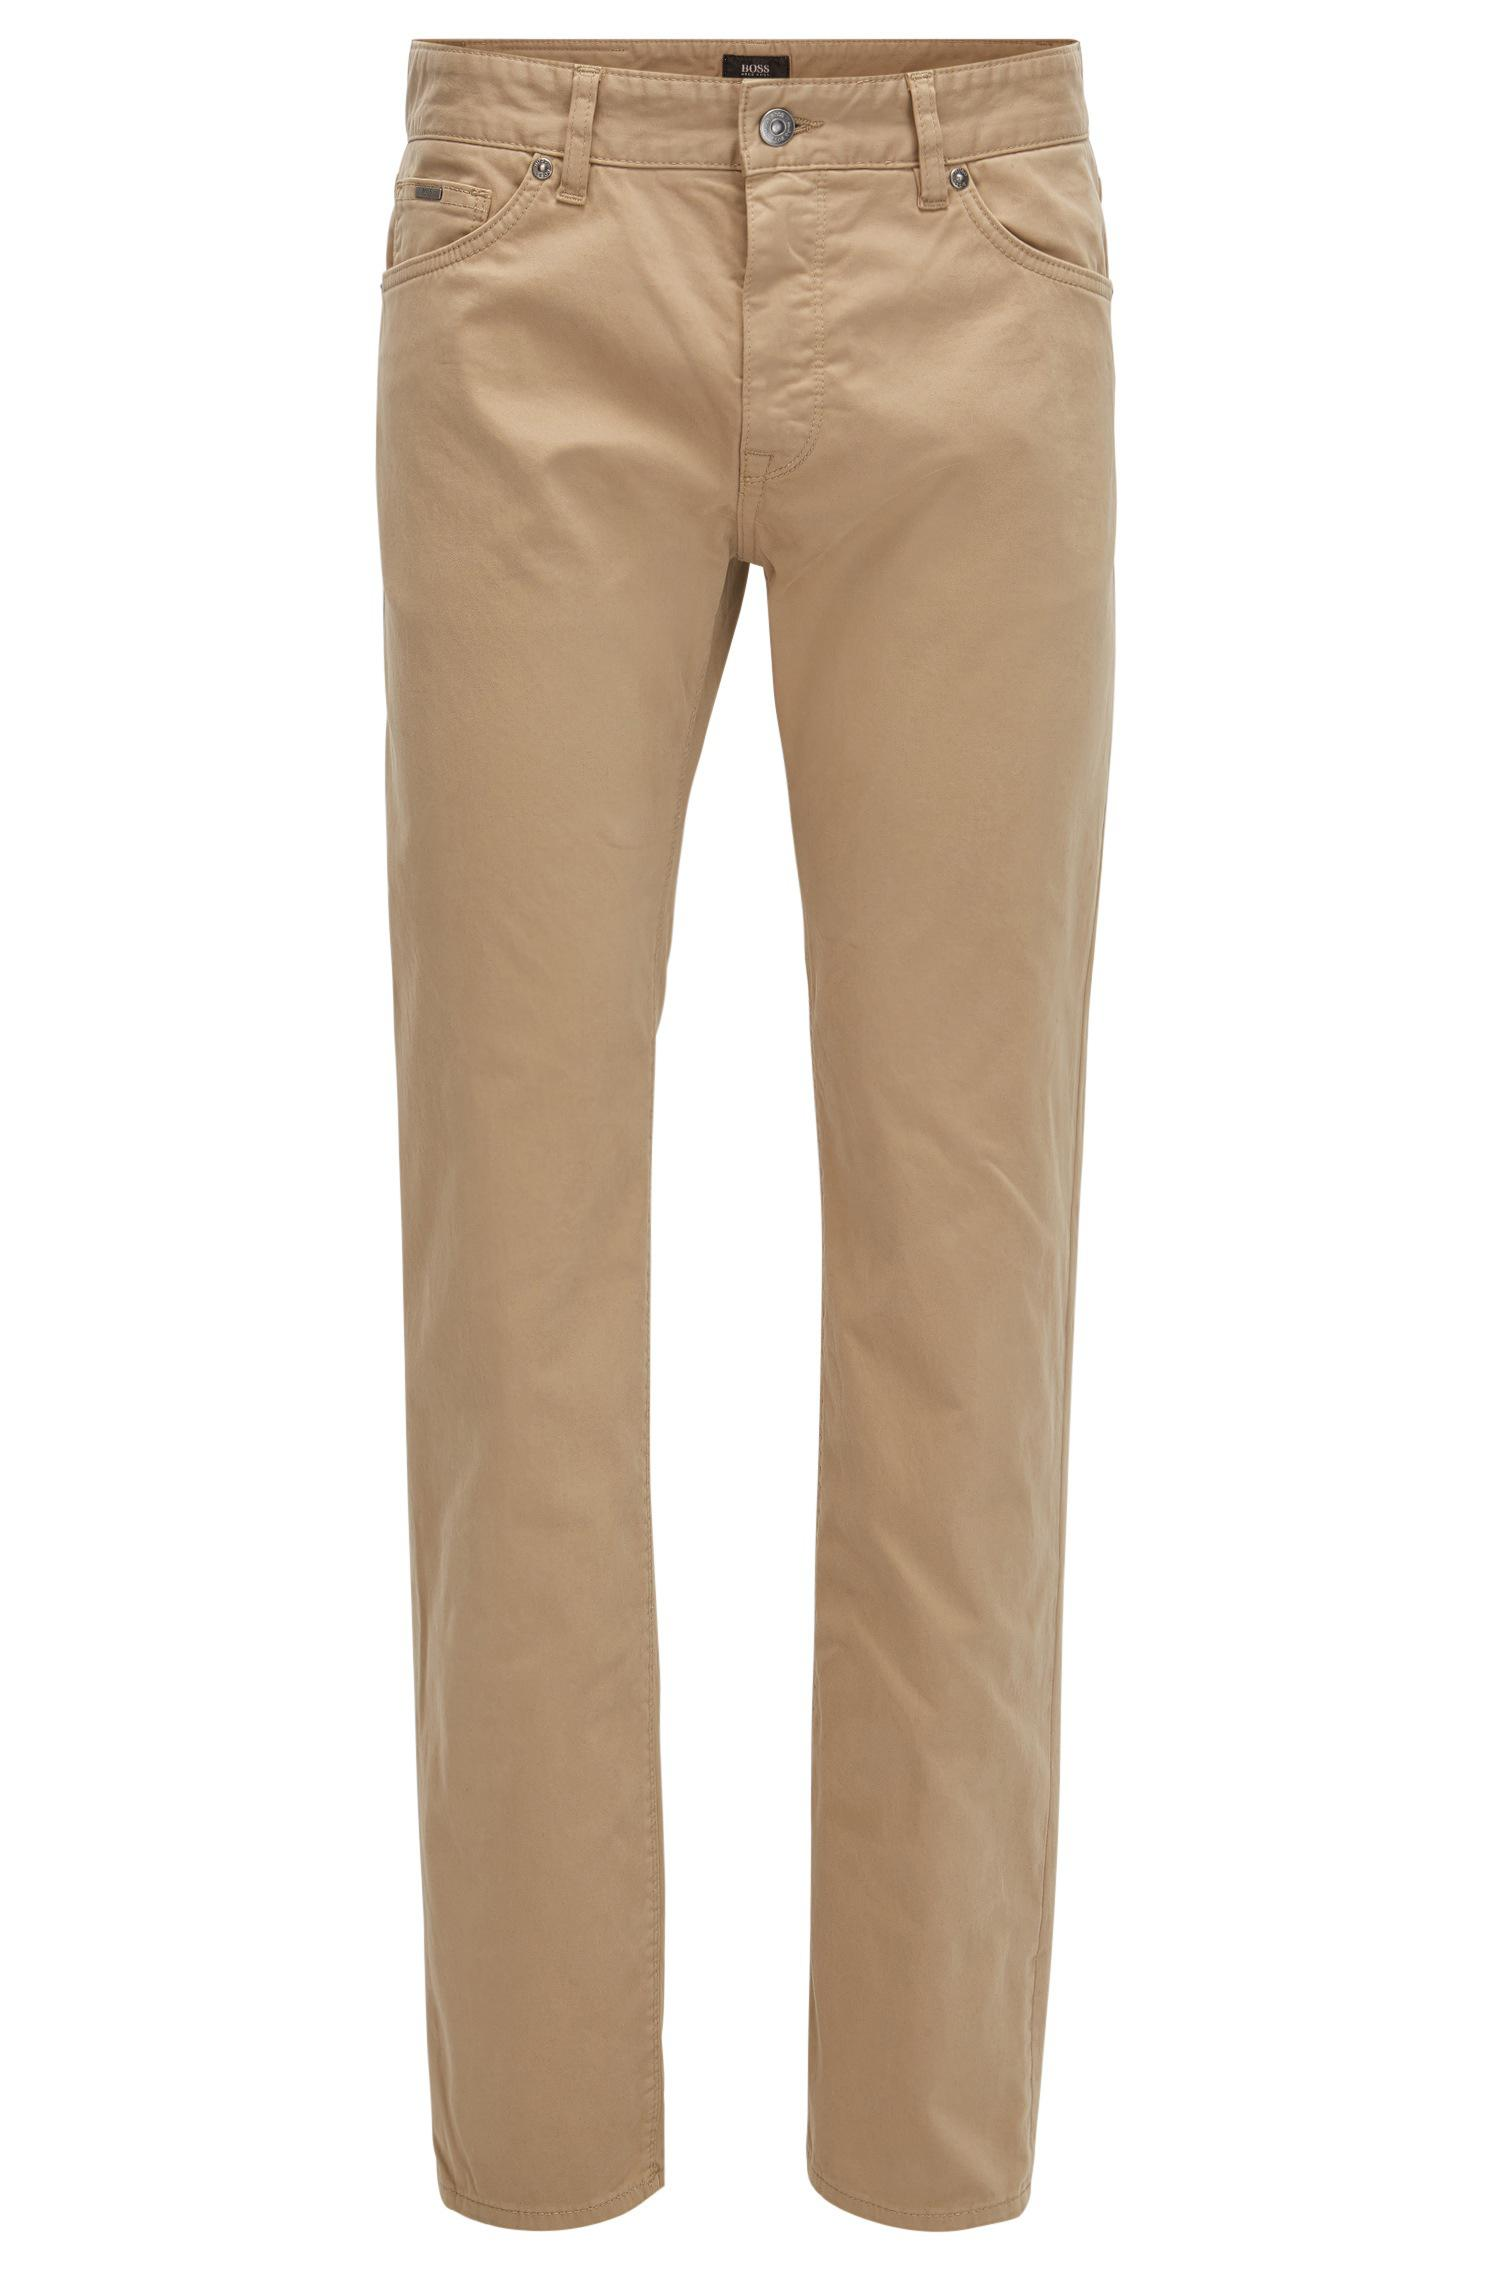 957910cedb Boss Regular-fit Jeans In Diamond-brushed Stretch Satin in Natural ...